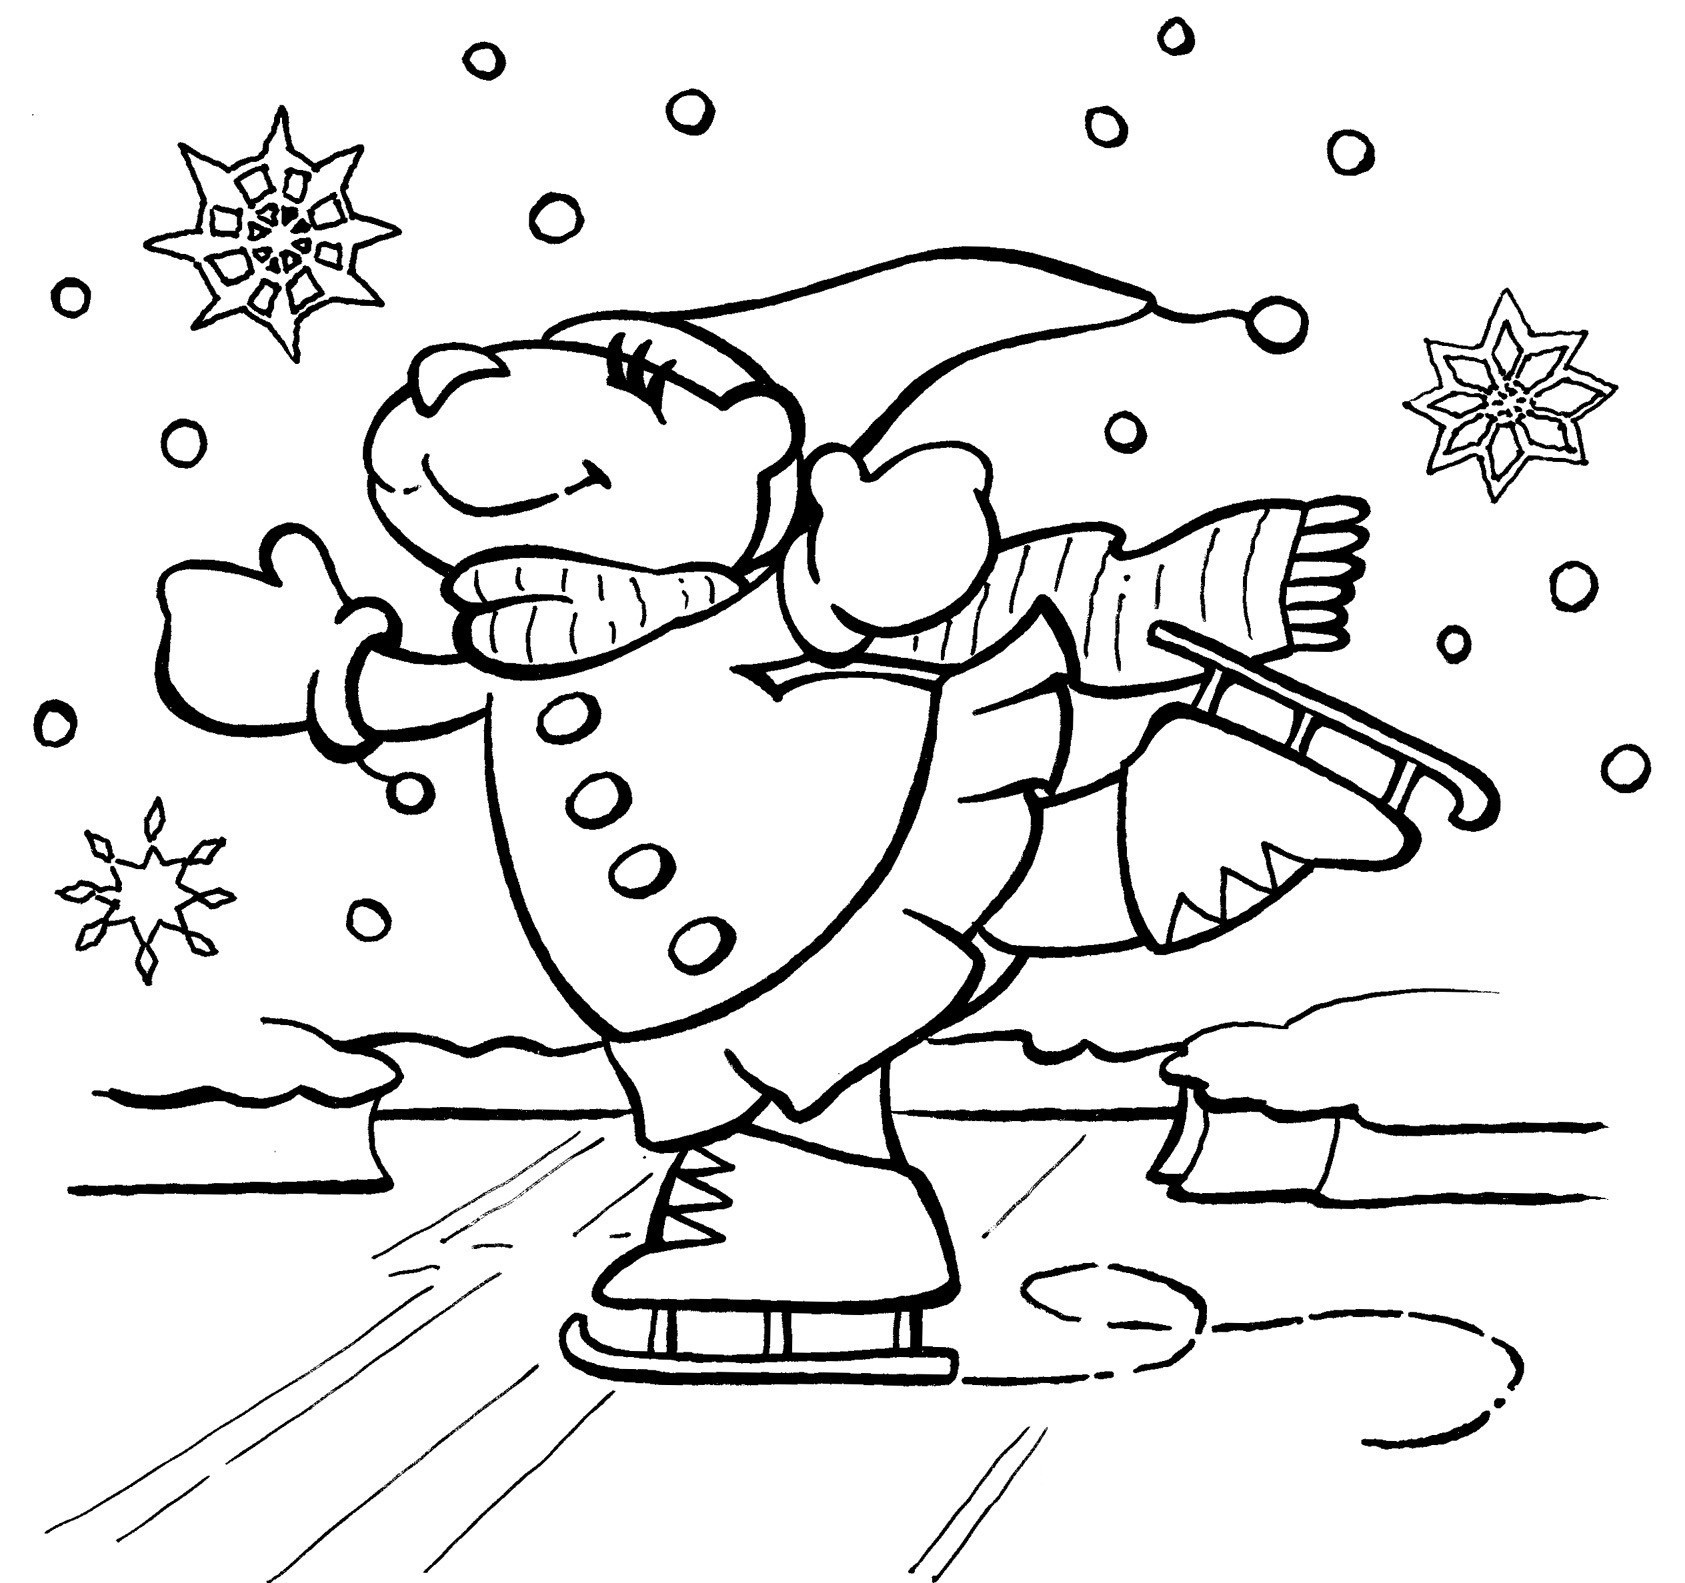 Ausmalbilder Winnie Pooh Inspirierend Winnie the Pooh Winter Coloring Pages Coloring Pages Coloring Pages Galerie